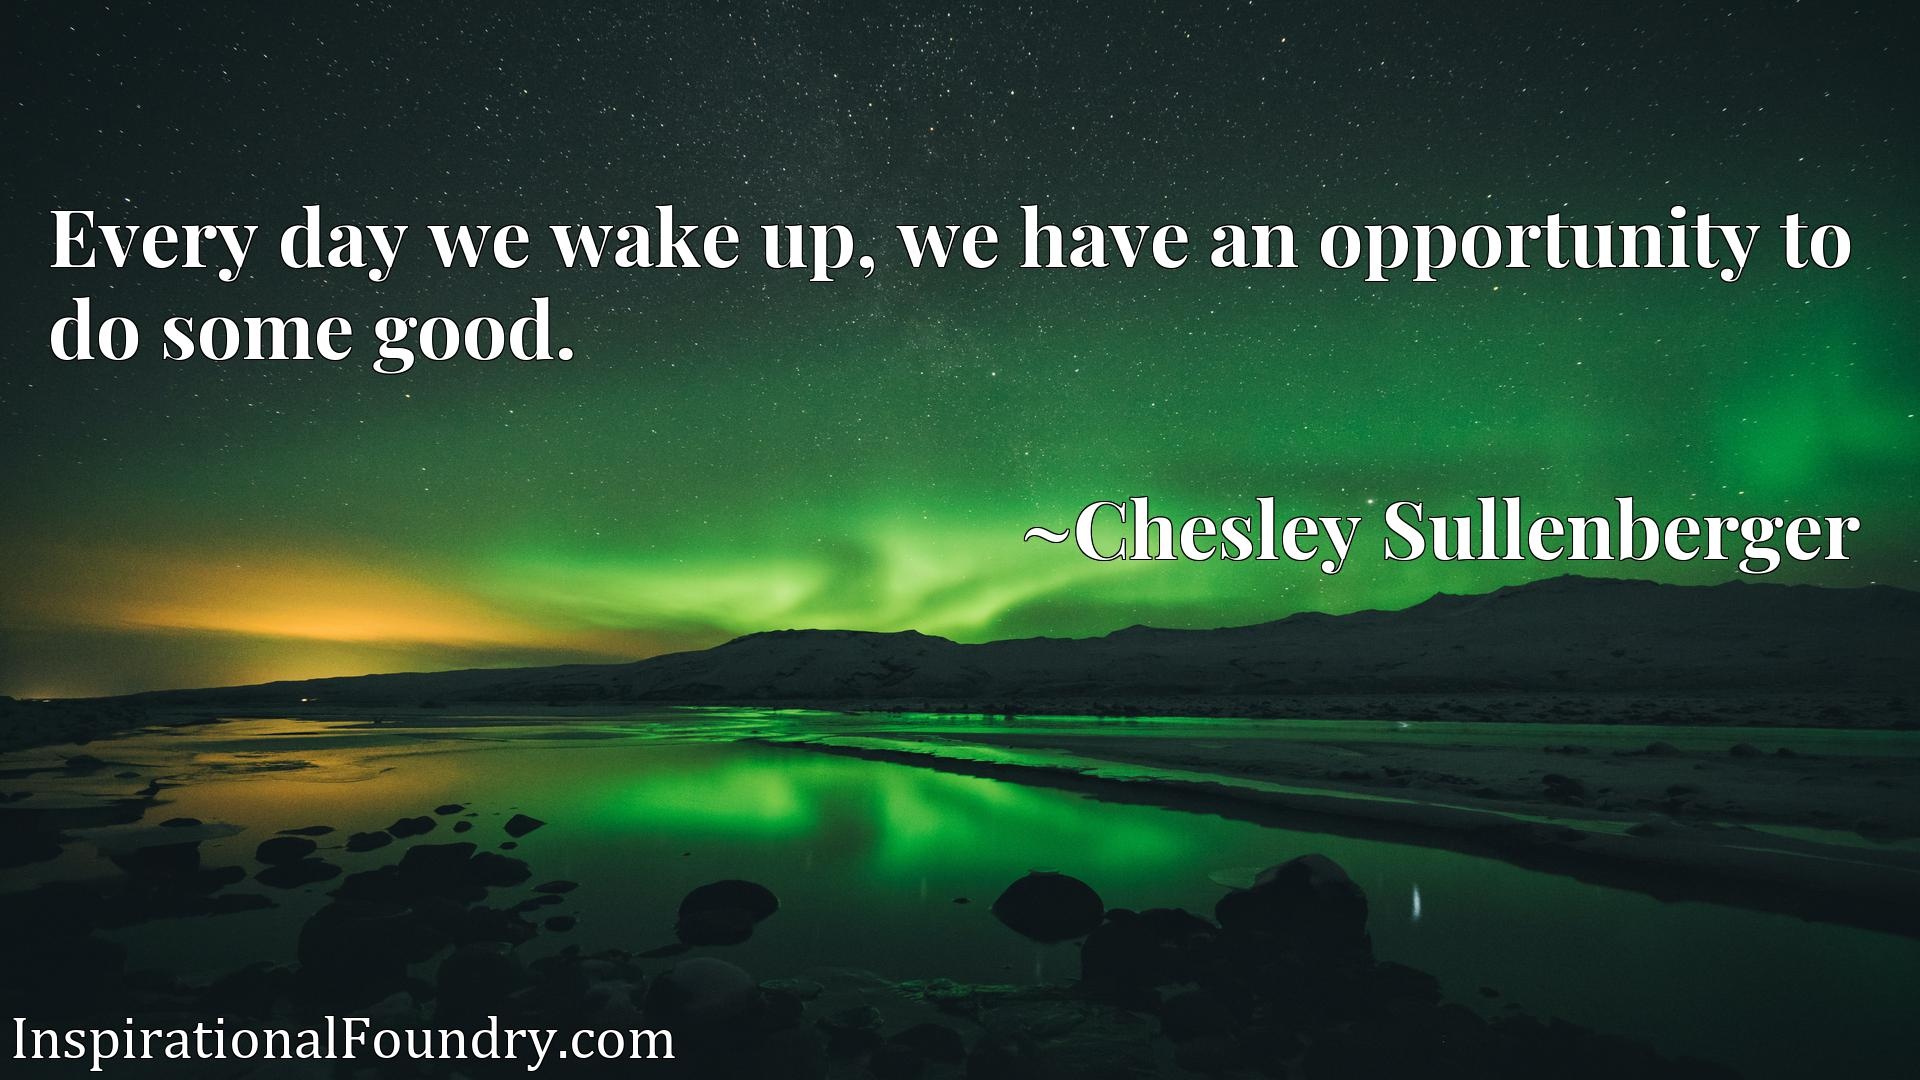 Every day we wake up, we have an opportunity to do some good.